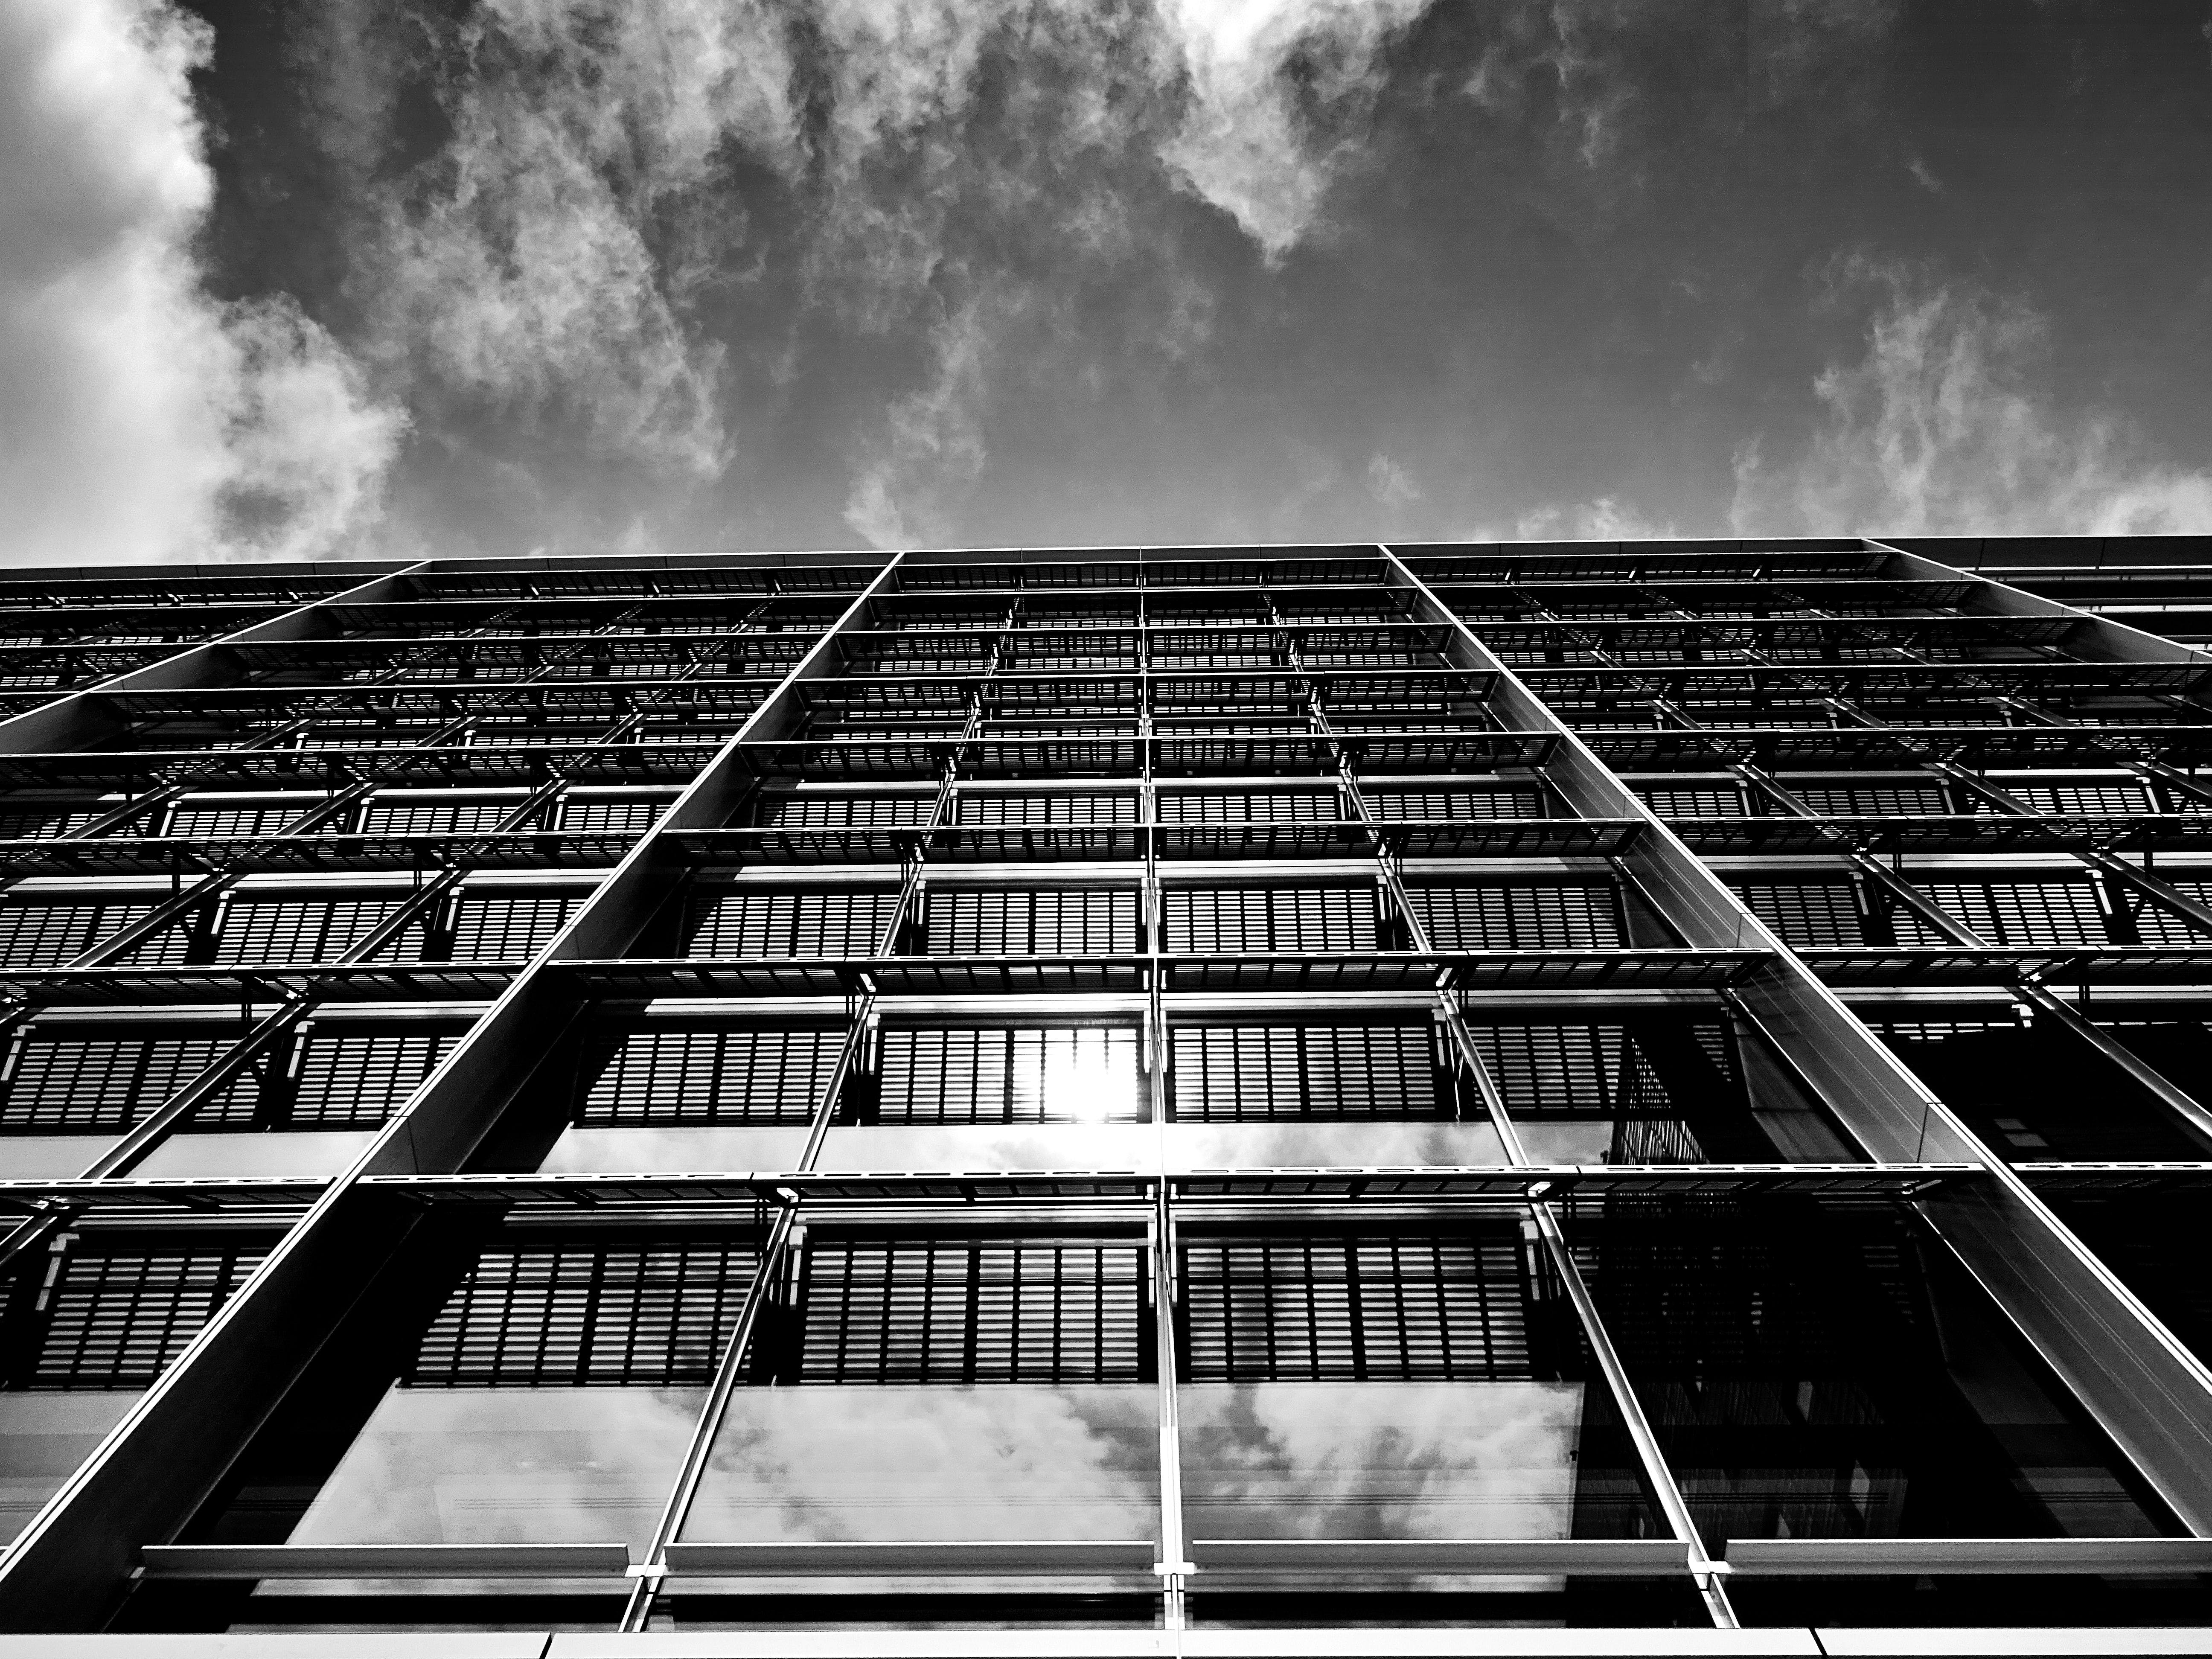 architecture, black and white, building